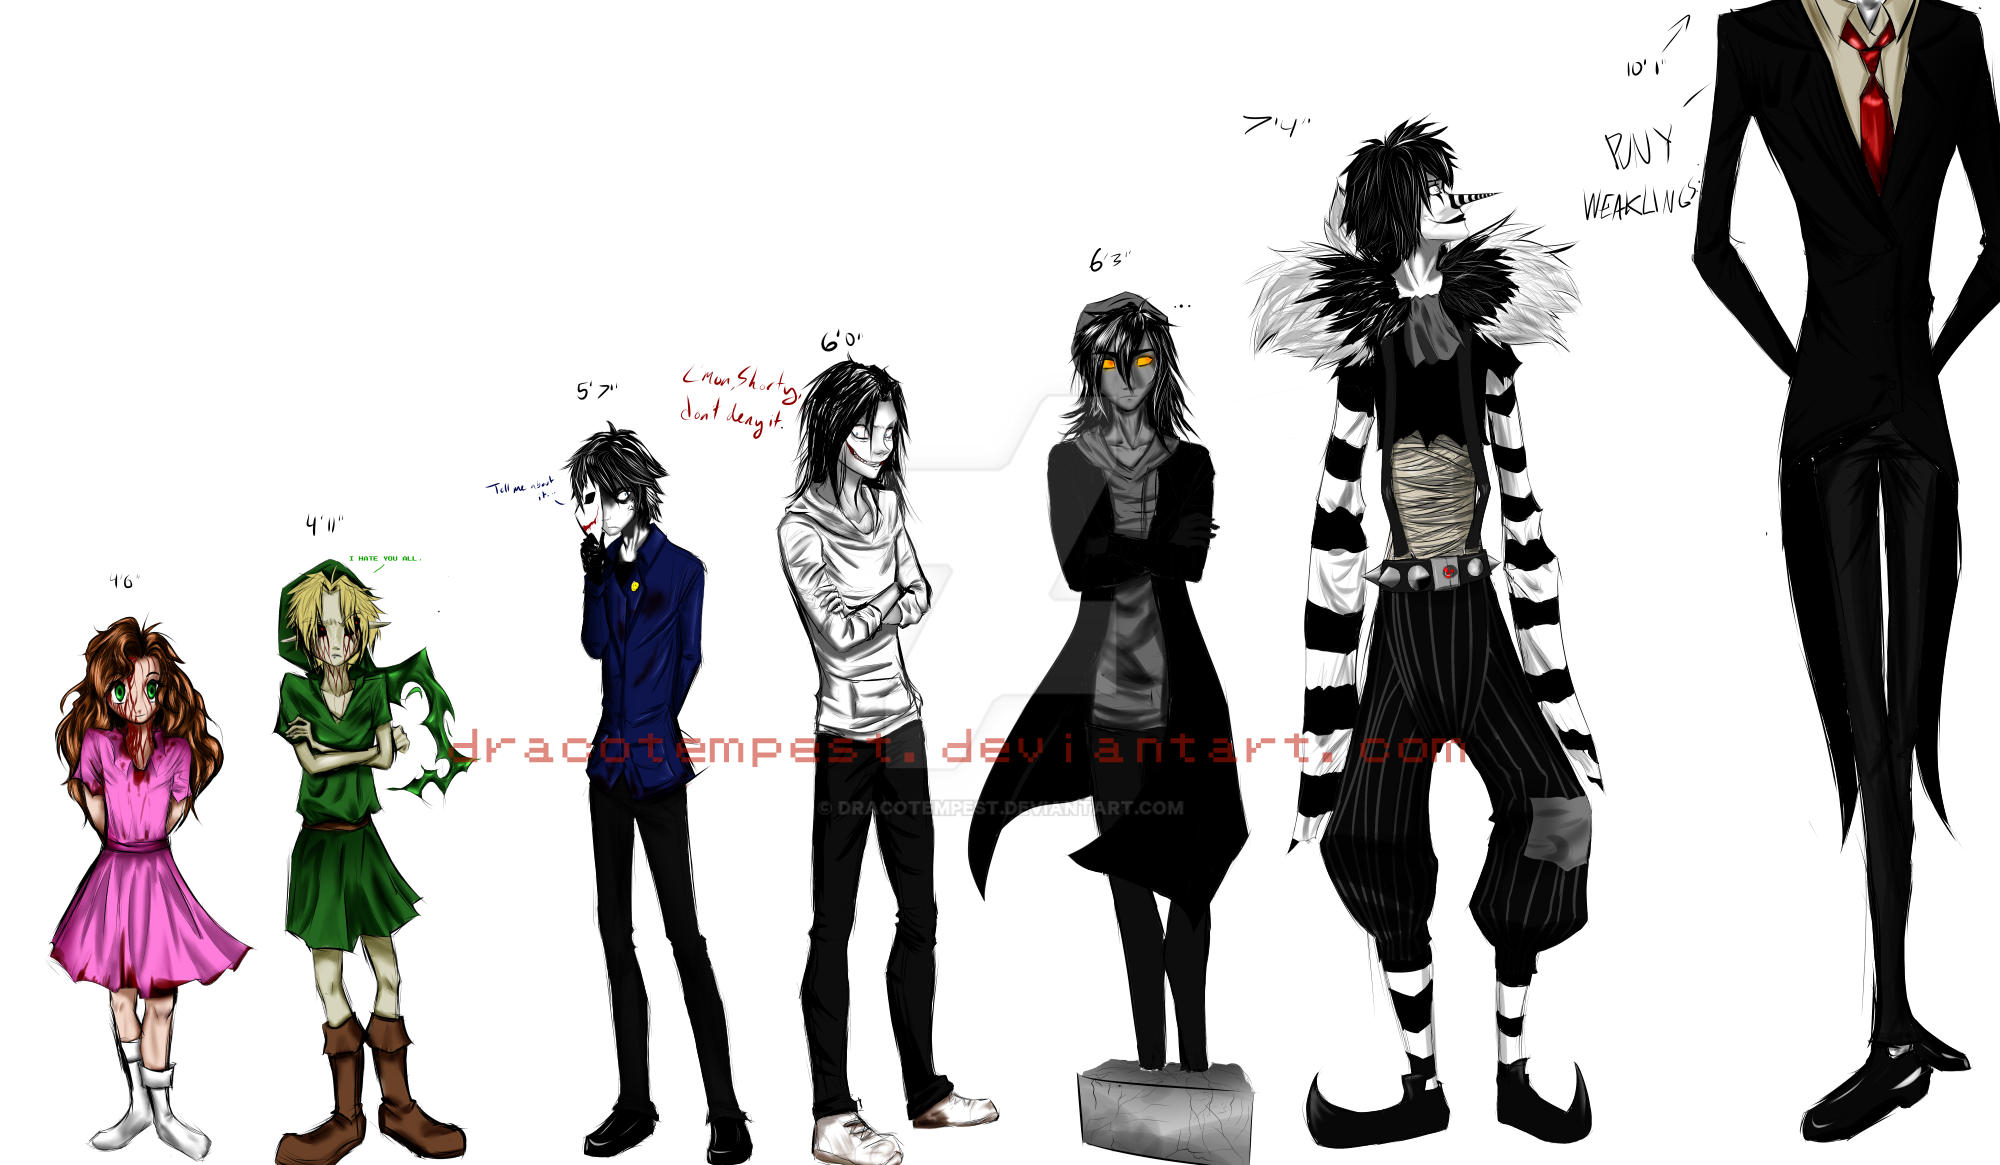 Creepypasta Height Comparison By DracoTempest On DeviantArt